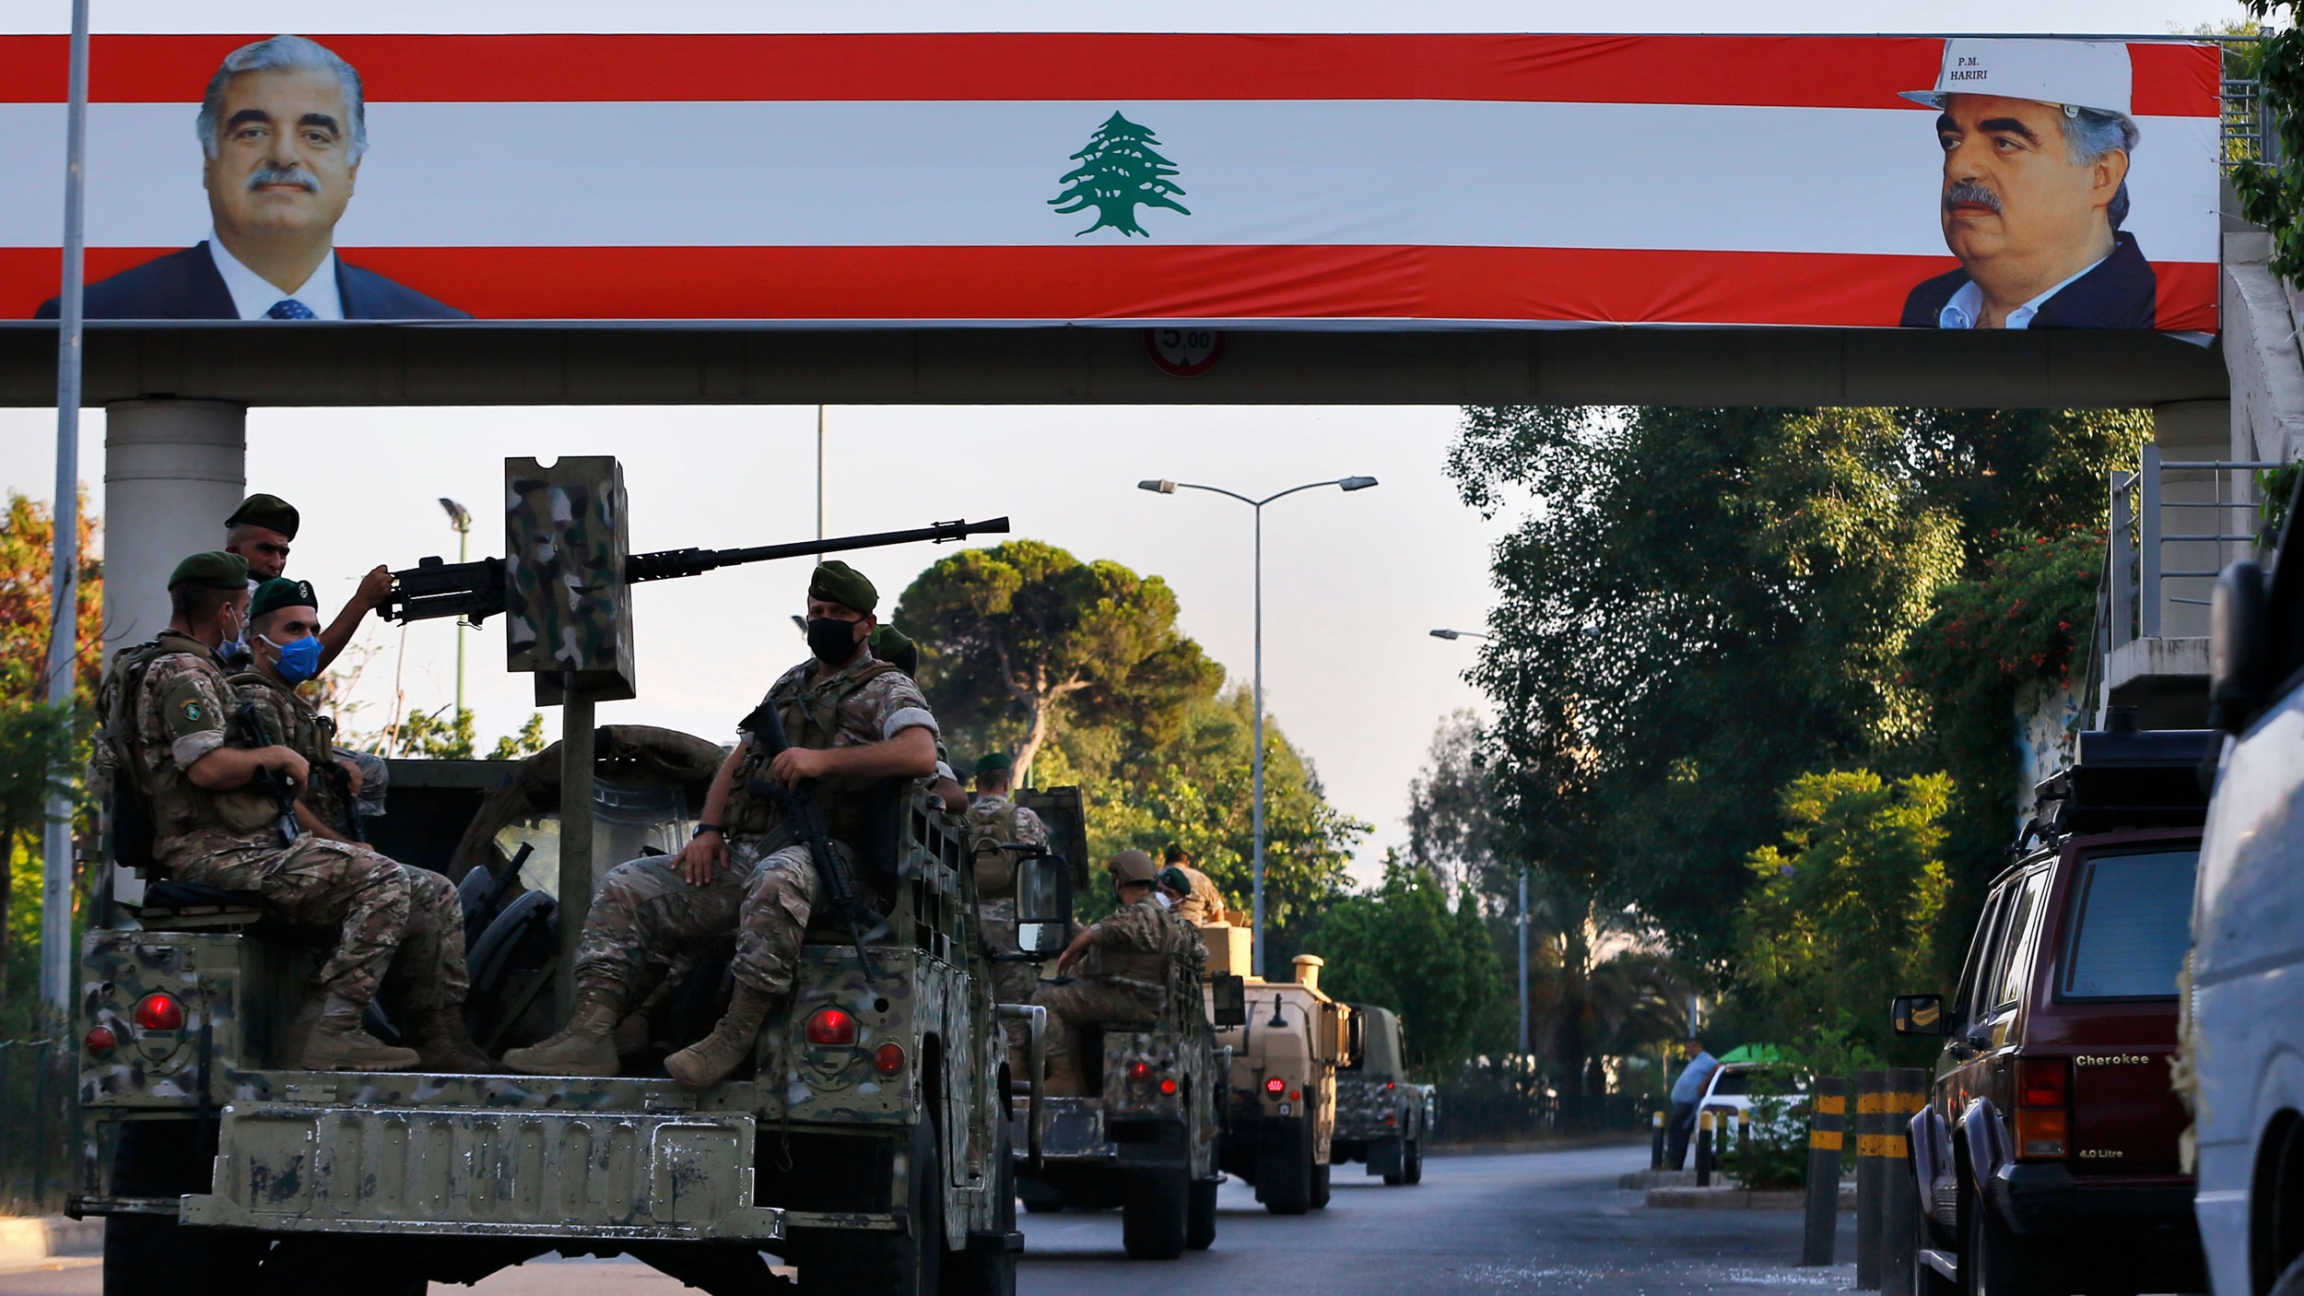 A convoy of military vehicles, some equipped with weapons, pass under a large Lebanese flag with pictures of slain Lebanese Prime Minister Rafik Hariri.